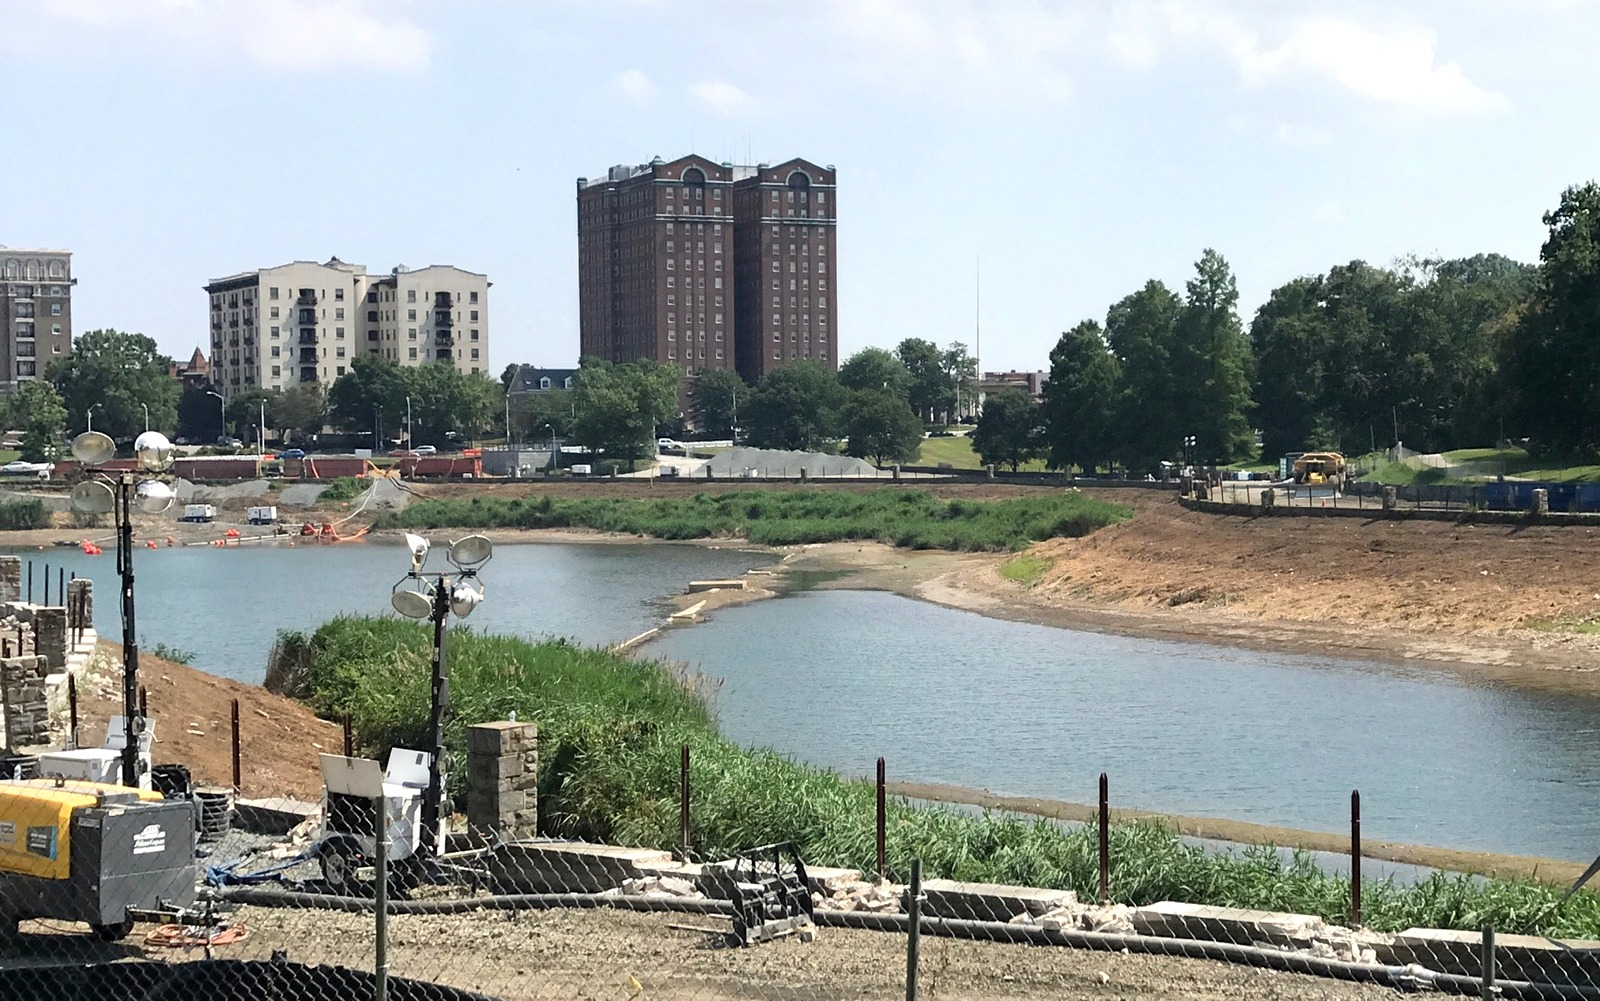 The draining of the western end of Druid Lake, where water storage tanks will eventually be buried, has resulted in illegal discharges of chlorinated water into the nearby Jones Falls, according to state regulators. (Mark Reutter)